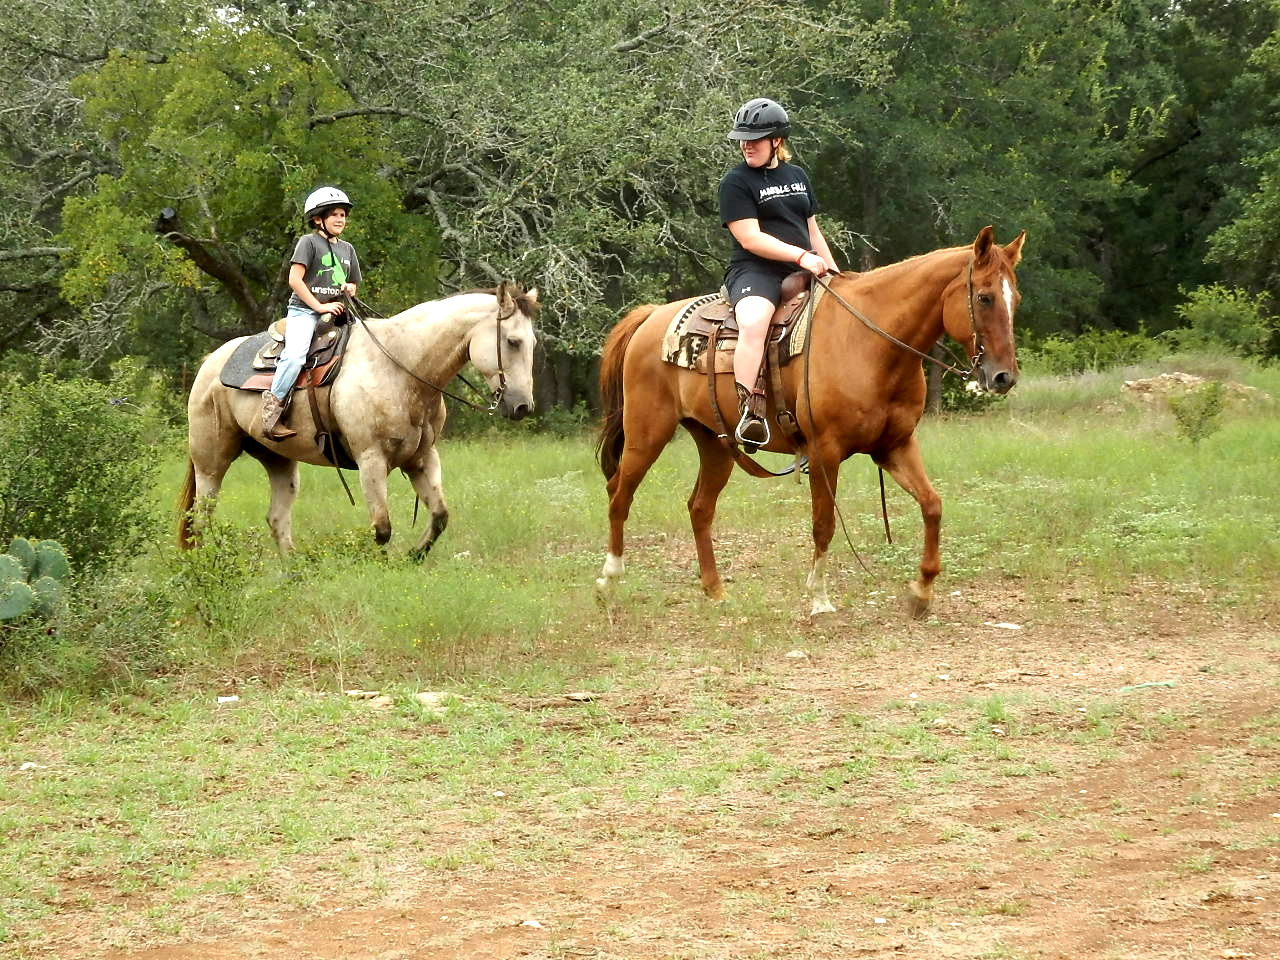 Happiness is out for a safe ride on a good horse with a good friend!